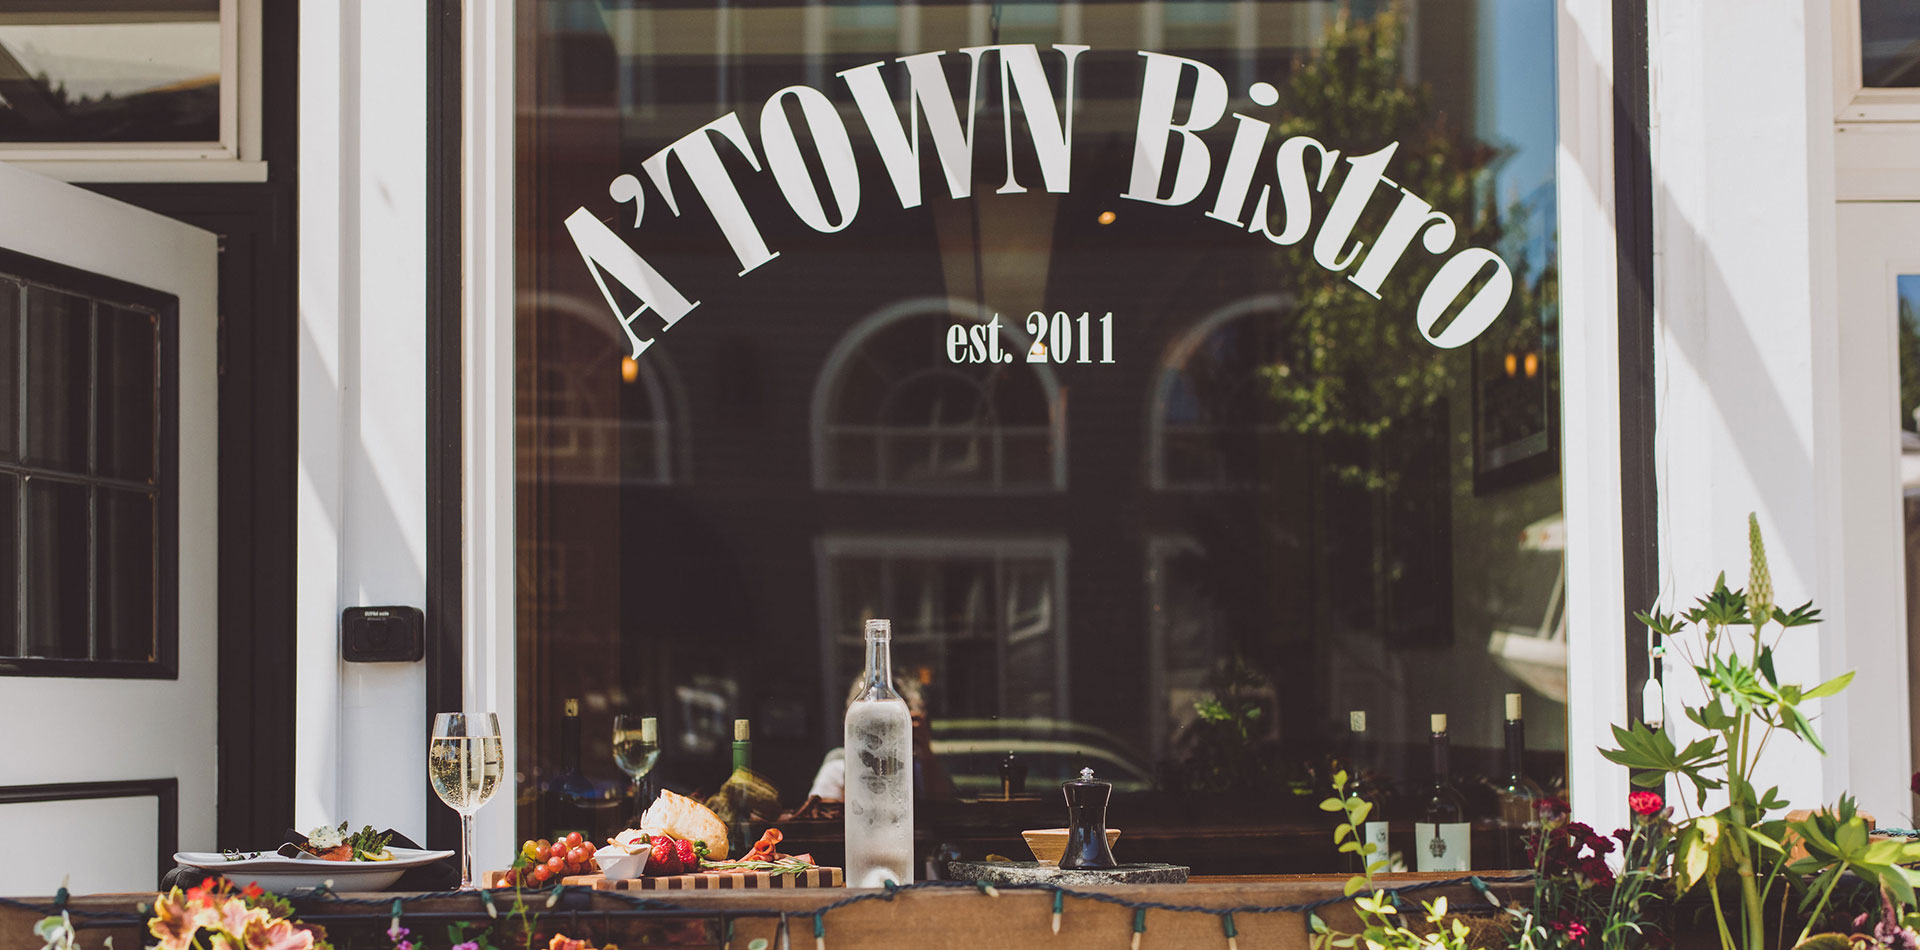 A'Town Bistro - Reservations 360.899.4001